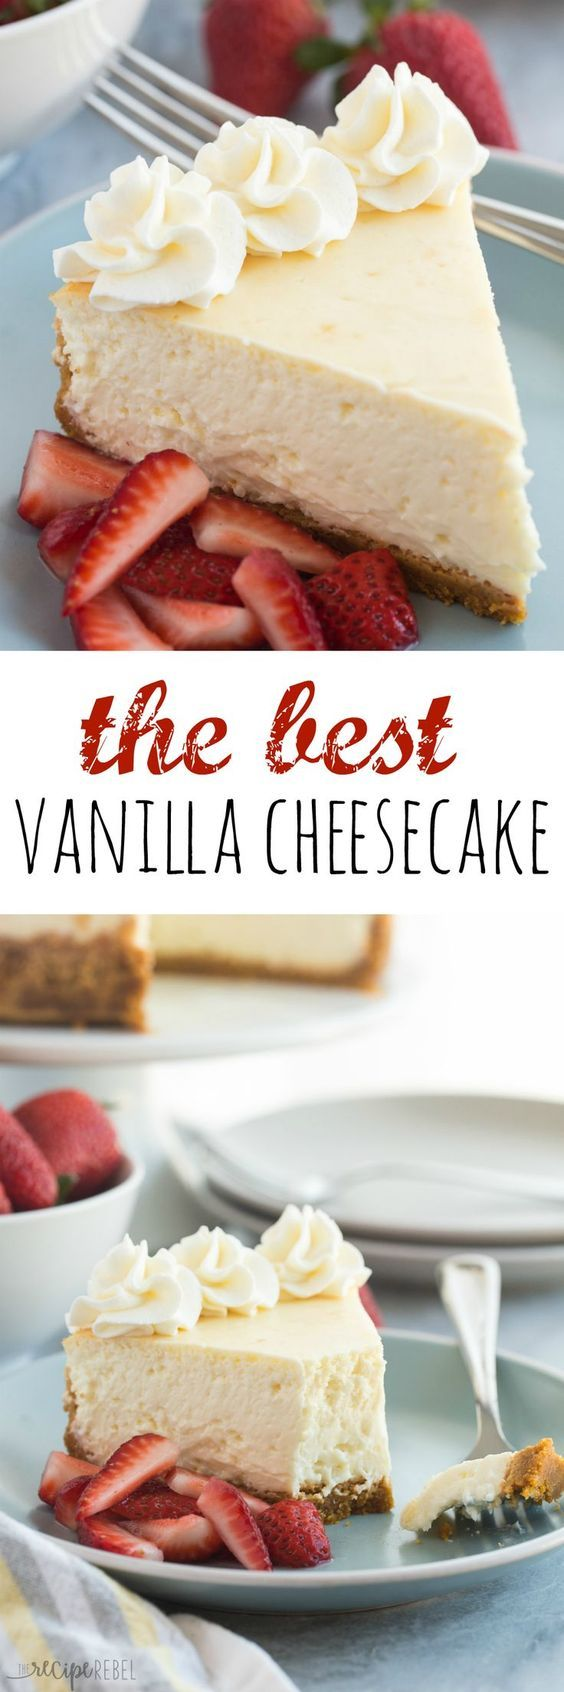 This Vanilla Cheesecake is super creamy and not as heavy as traditional baked cheesecake thanks to a good dose of sour cream or Greek yogurt — it's soft and luscious and perfect with fresh berries!